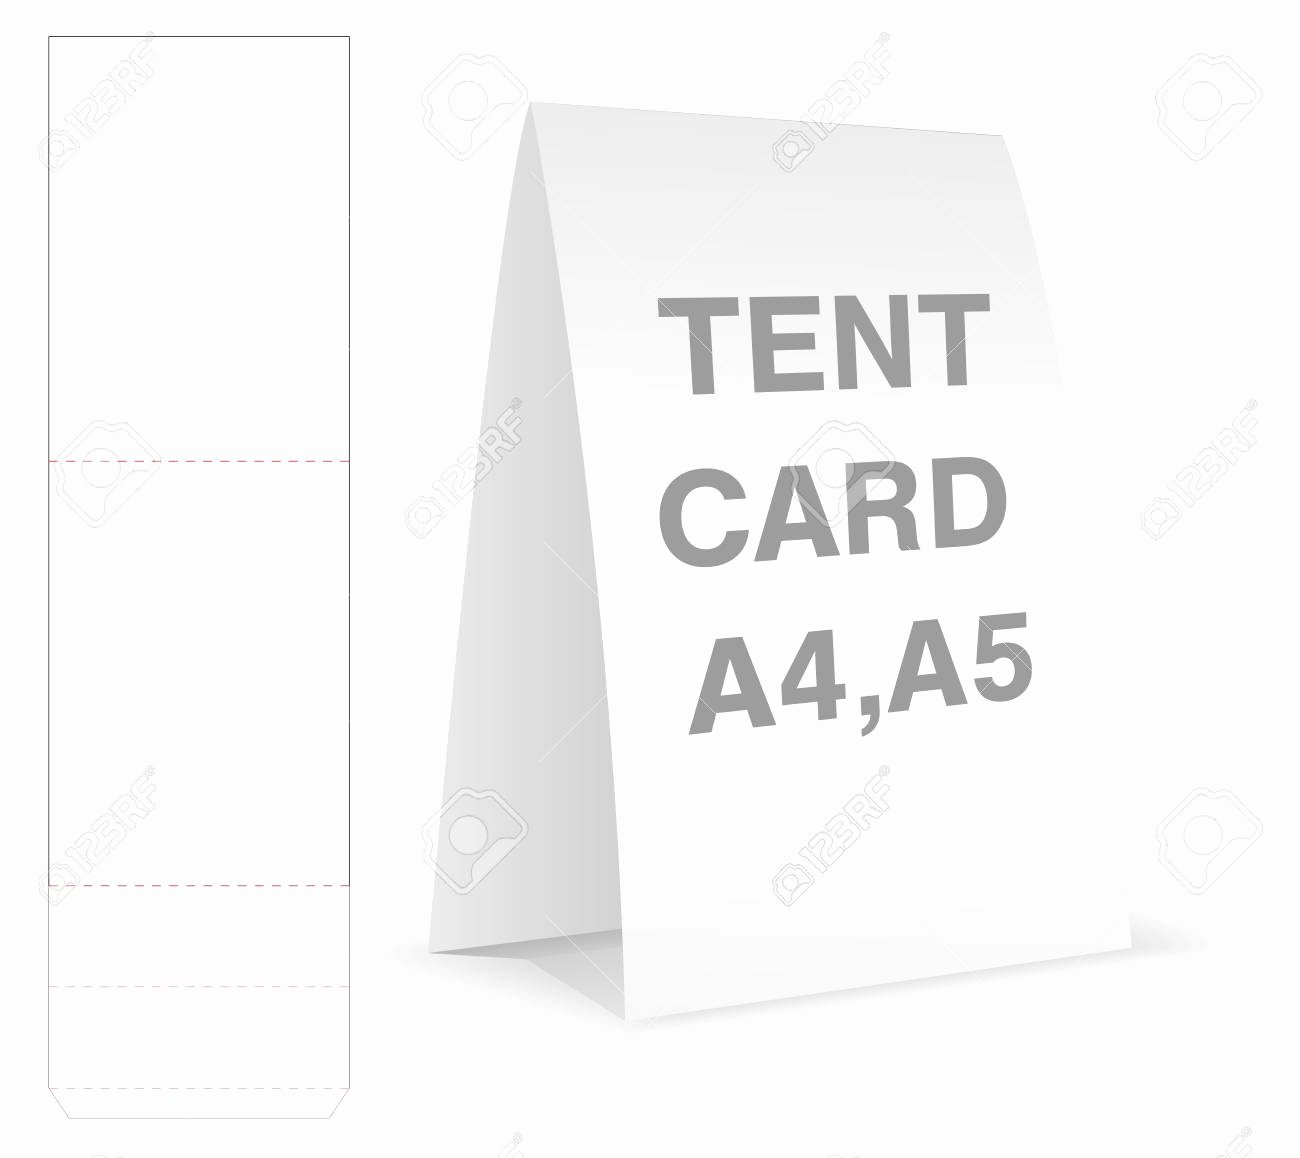 Wallet Card Template Excel Lovely Tent Card Template Free Download Indesign Illustrator